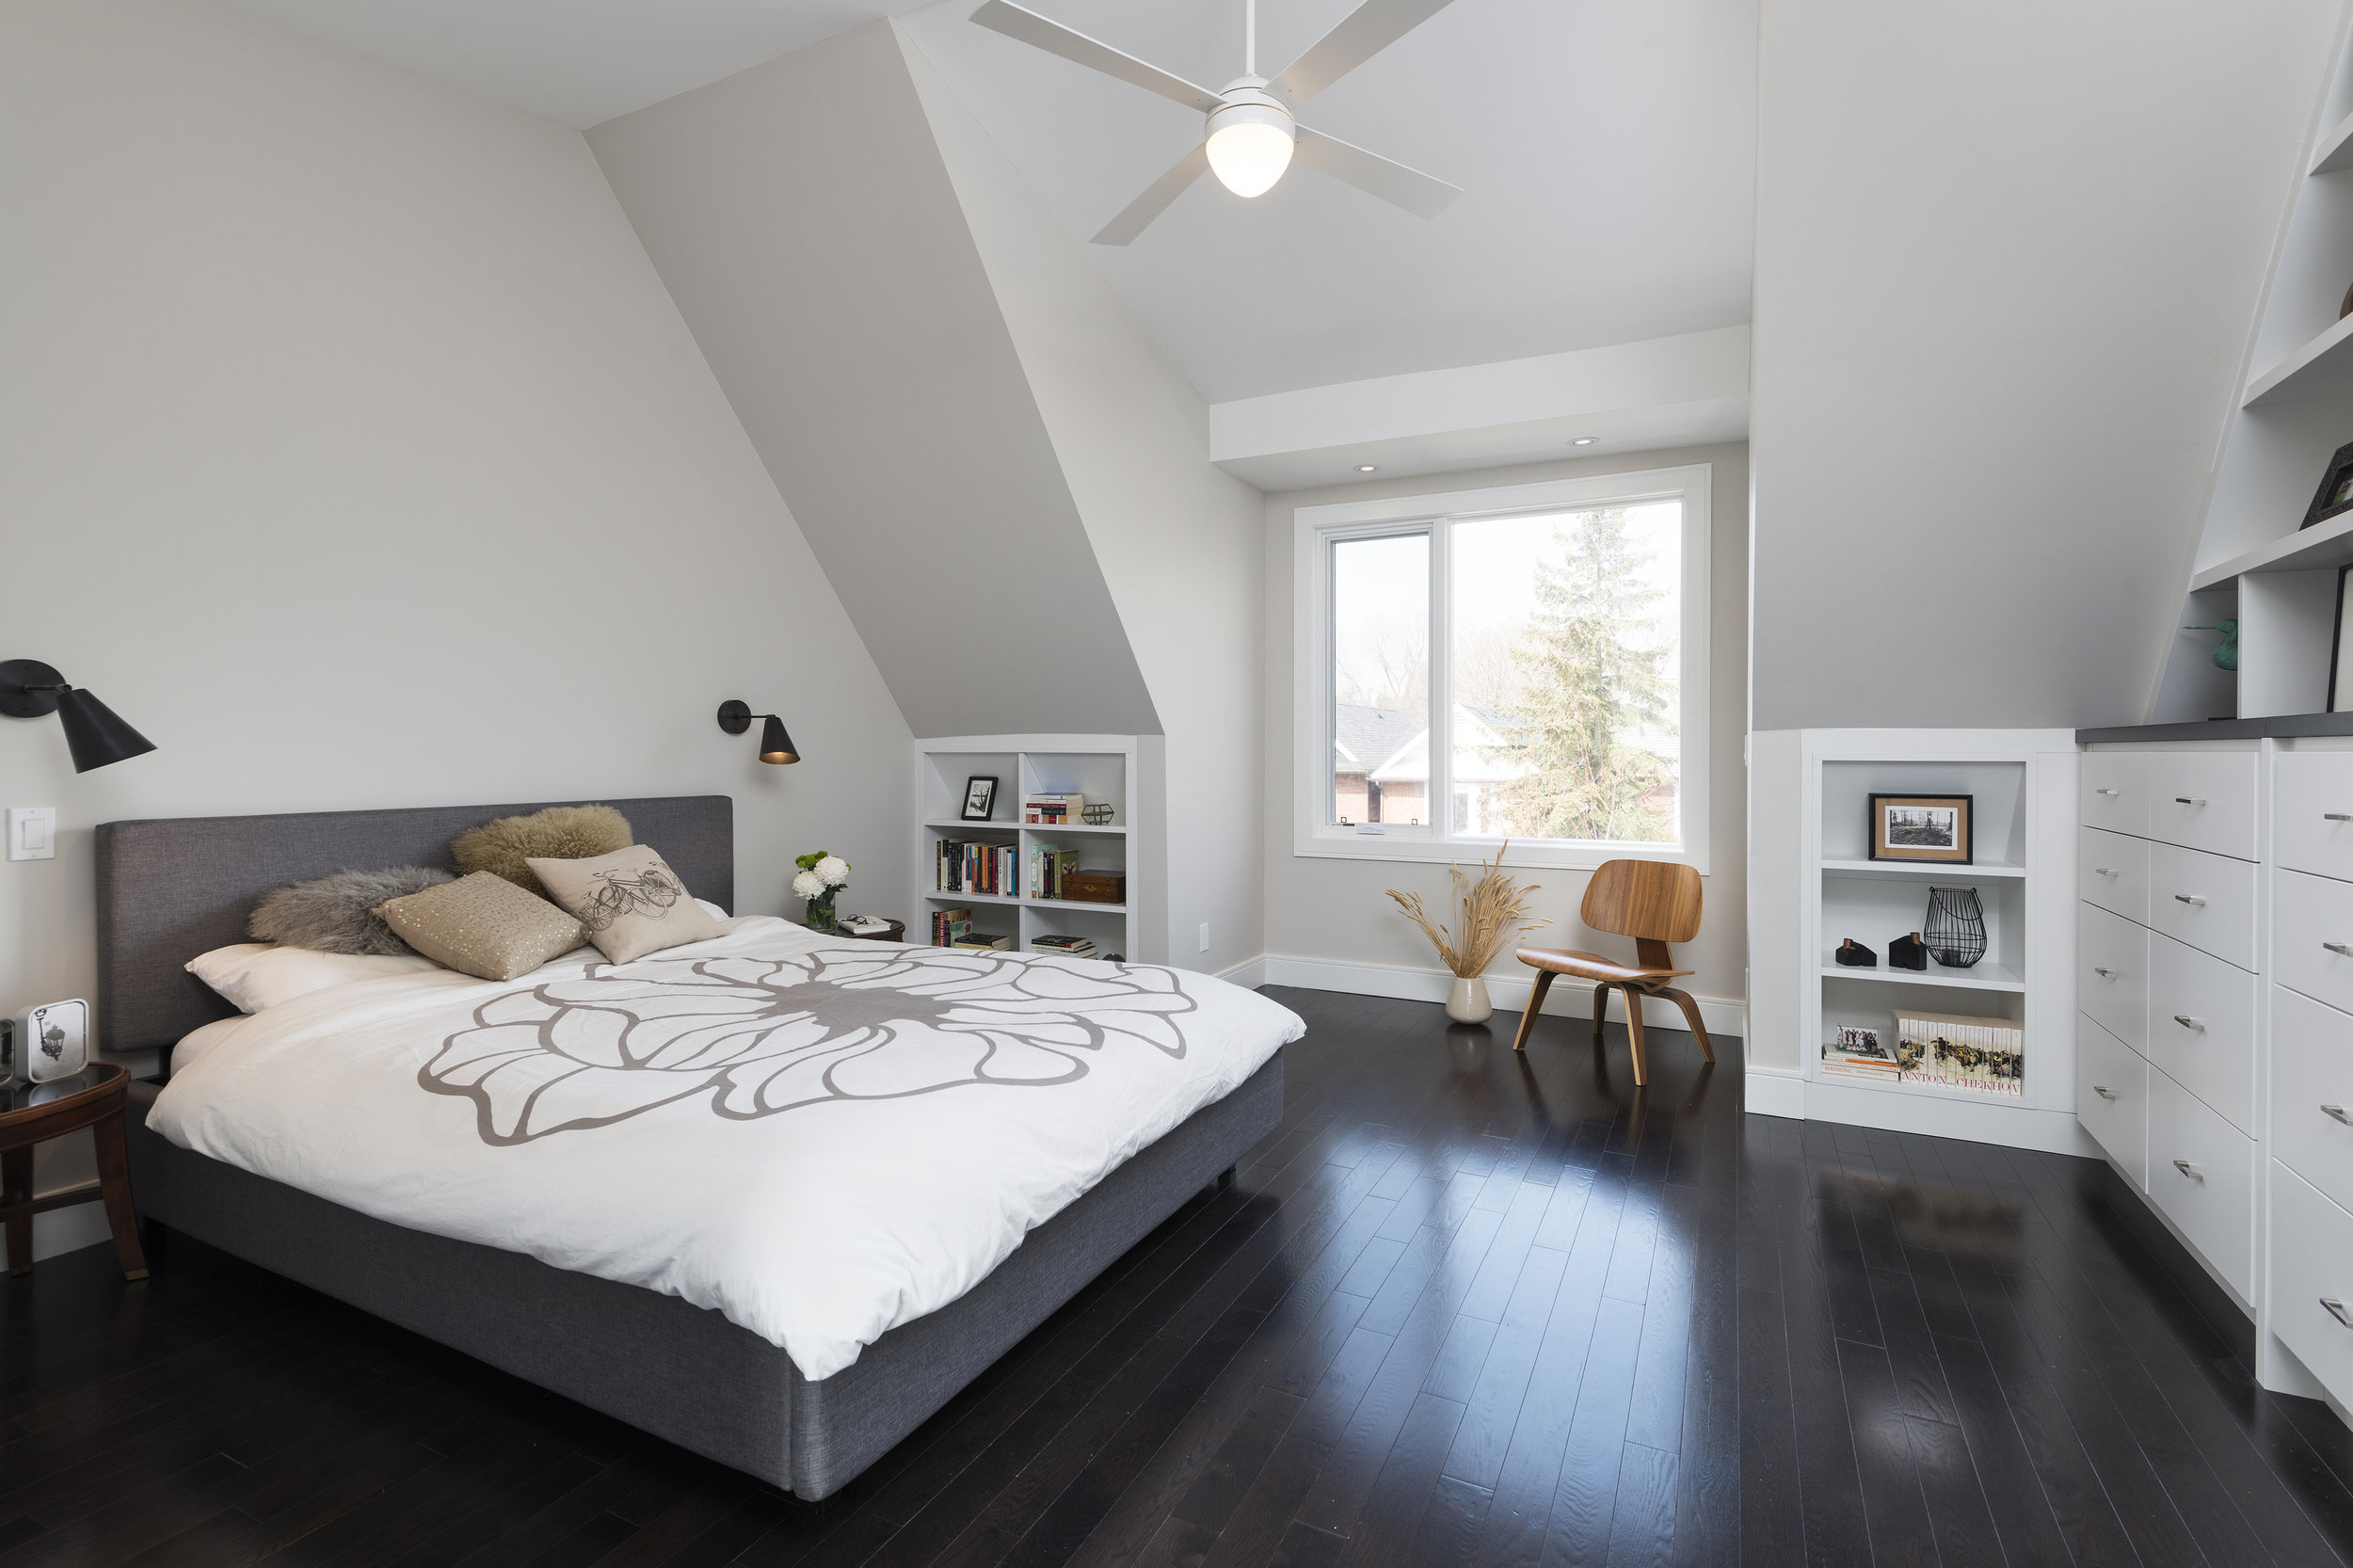 View of Master Bedroom with Kneewall shelving